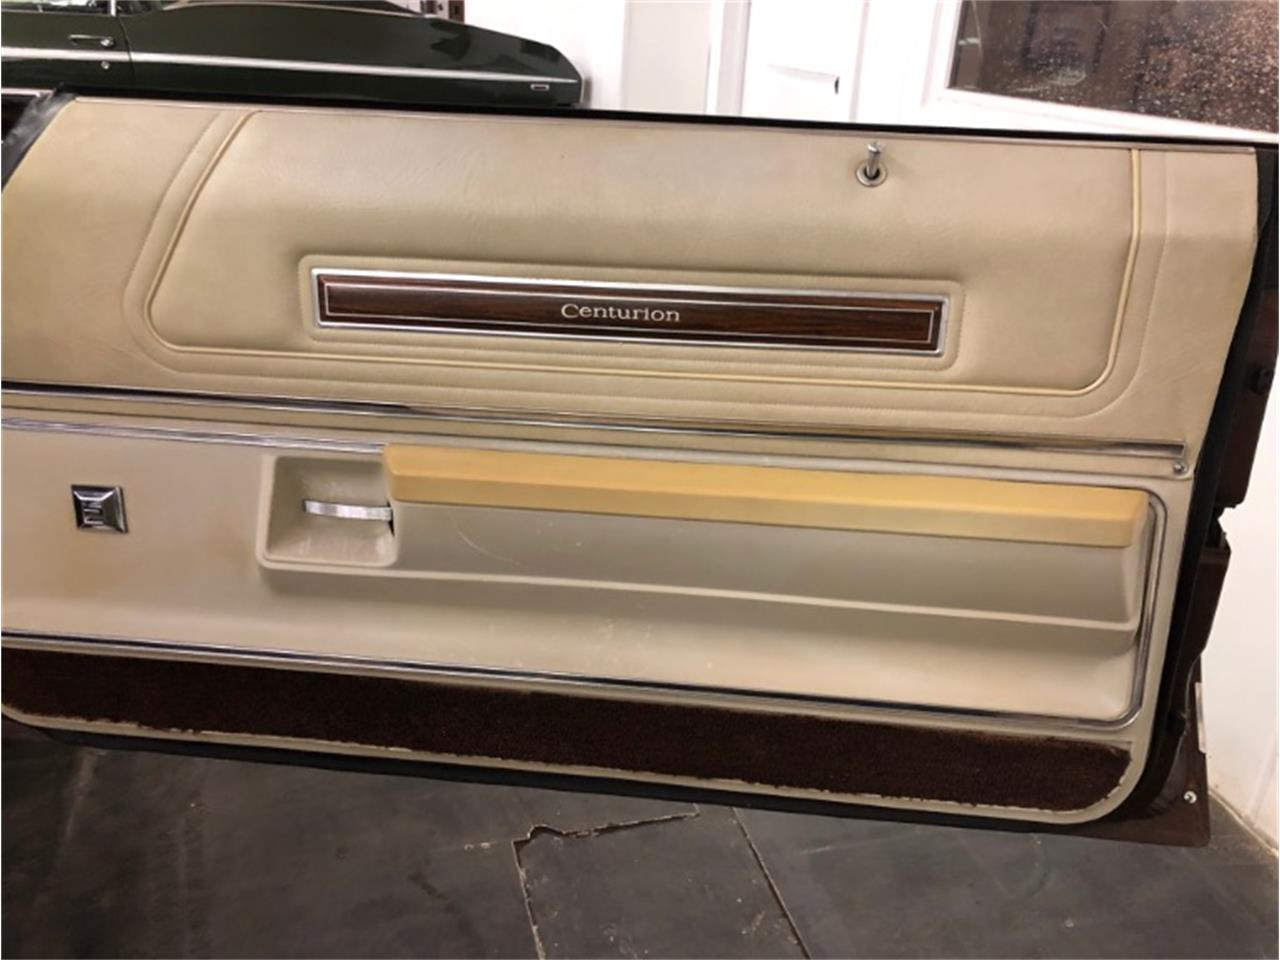 Large Picture of 1973 Buick Centurion located in Mundelein Illinois - $14,750.00 Offered by North Shore Classics - Q4OZ